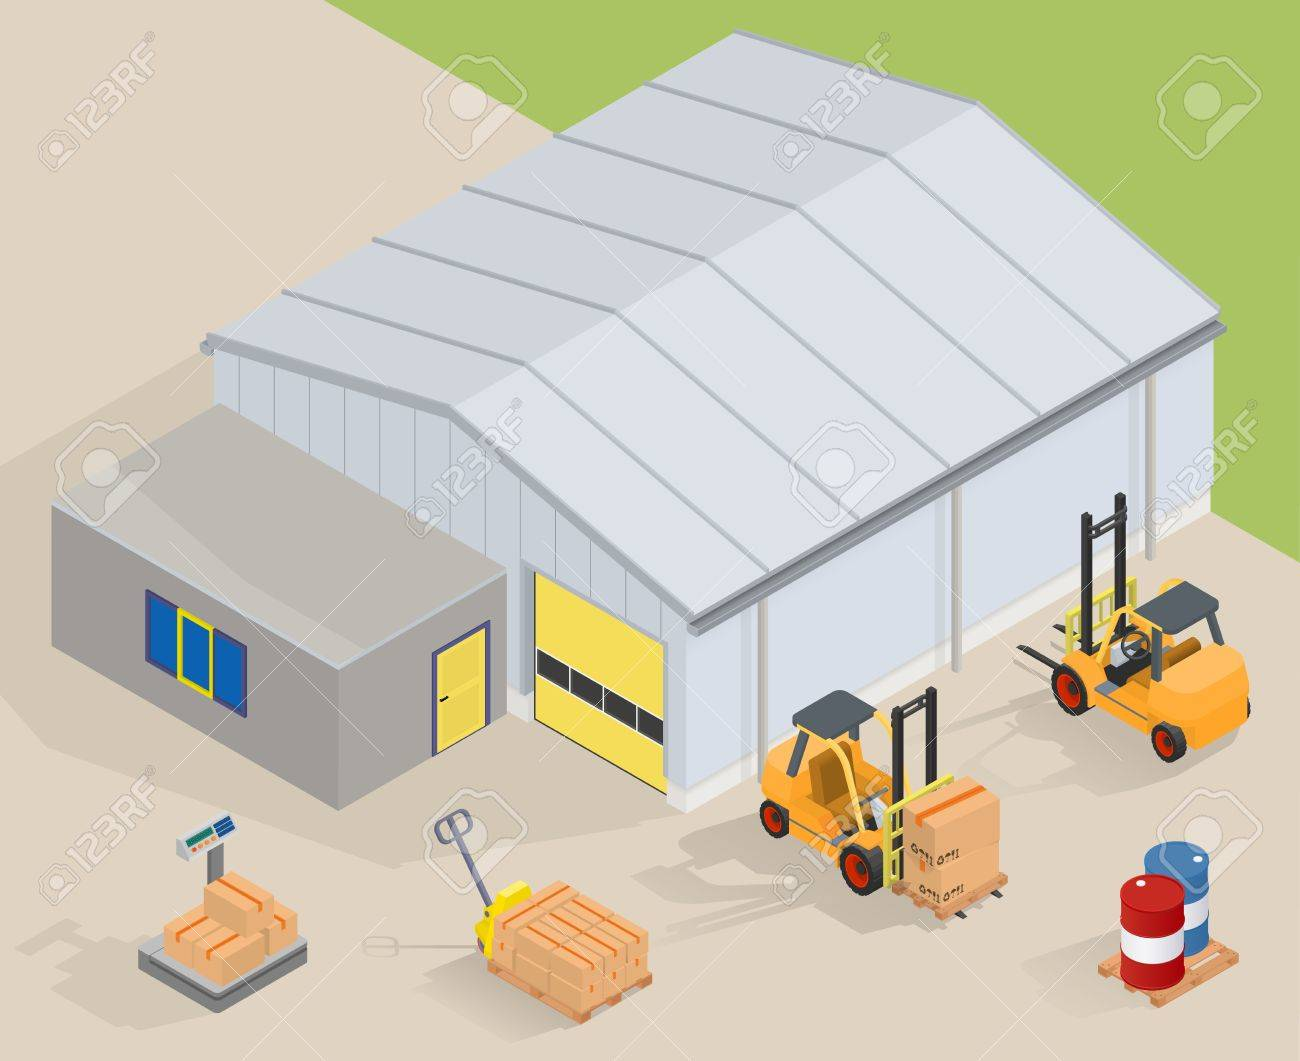 Big warehouse with office. Near forklifts, pallet truck, scales and barrels - isimetric vector illustration - 51000257